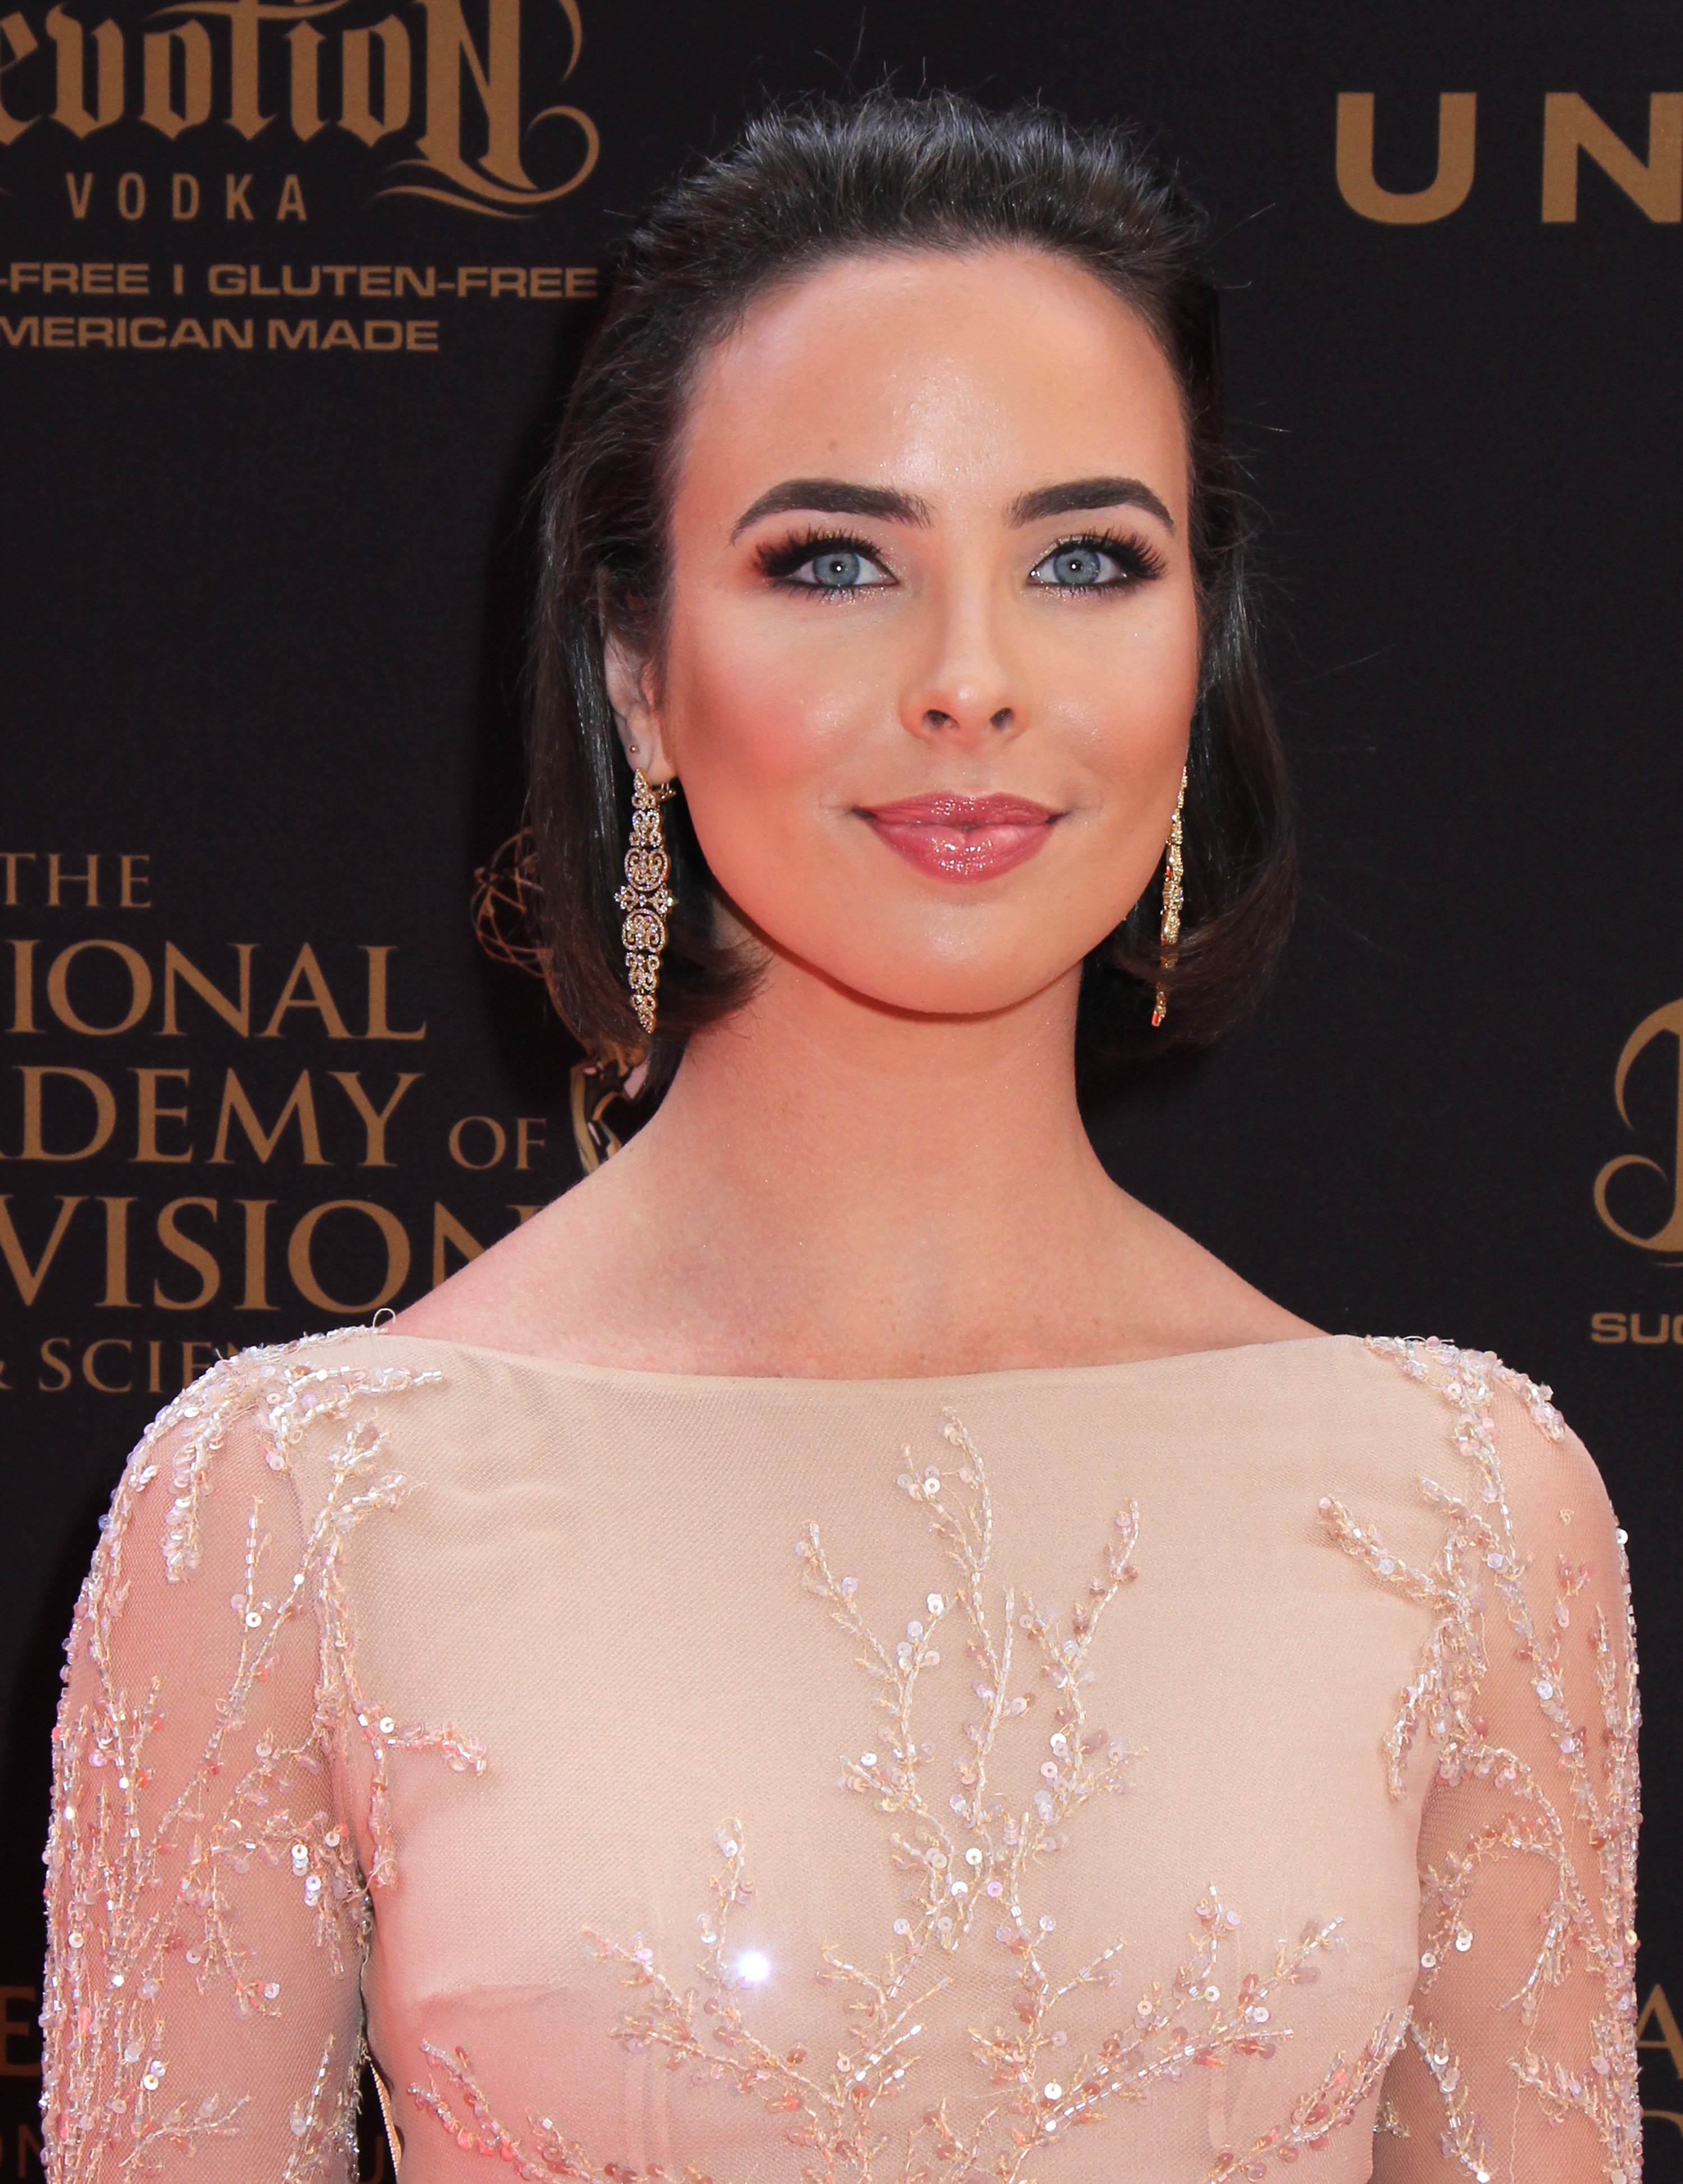 Ashleigh Brewer 43rd Annual Daytime Emmy Awards - Arrivals Held at the Westin Bonaventure Hotel on May 1, 2016. @Steven Bergman